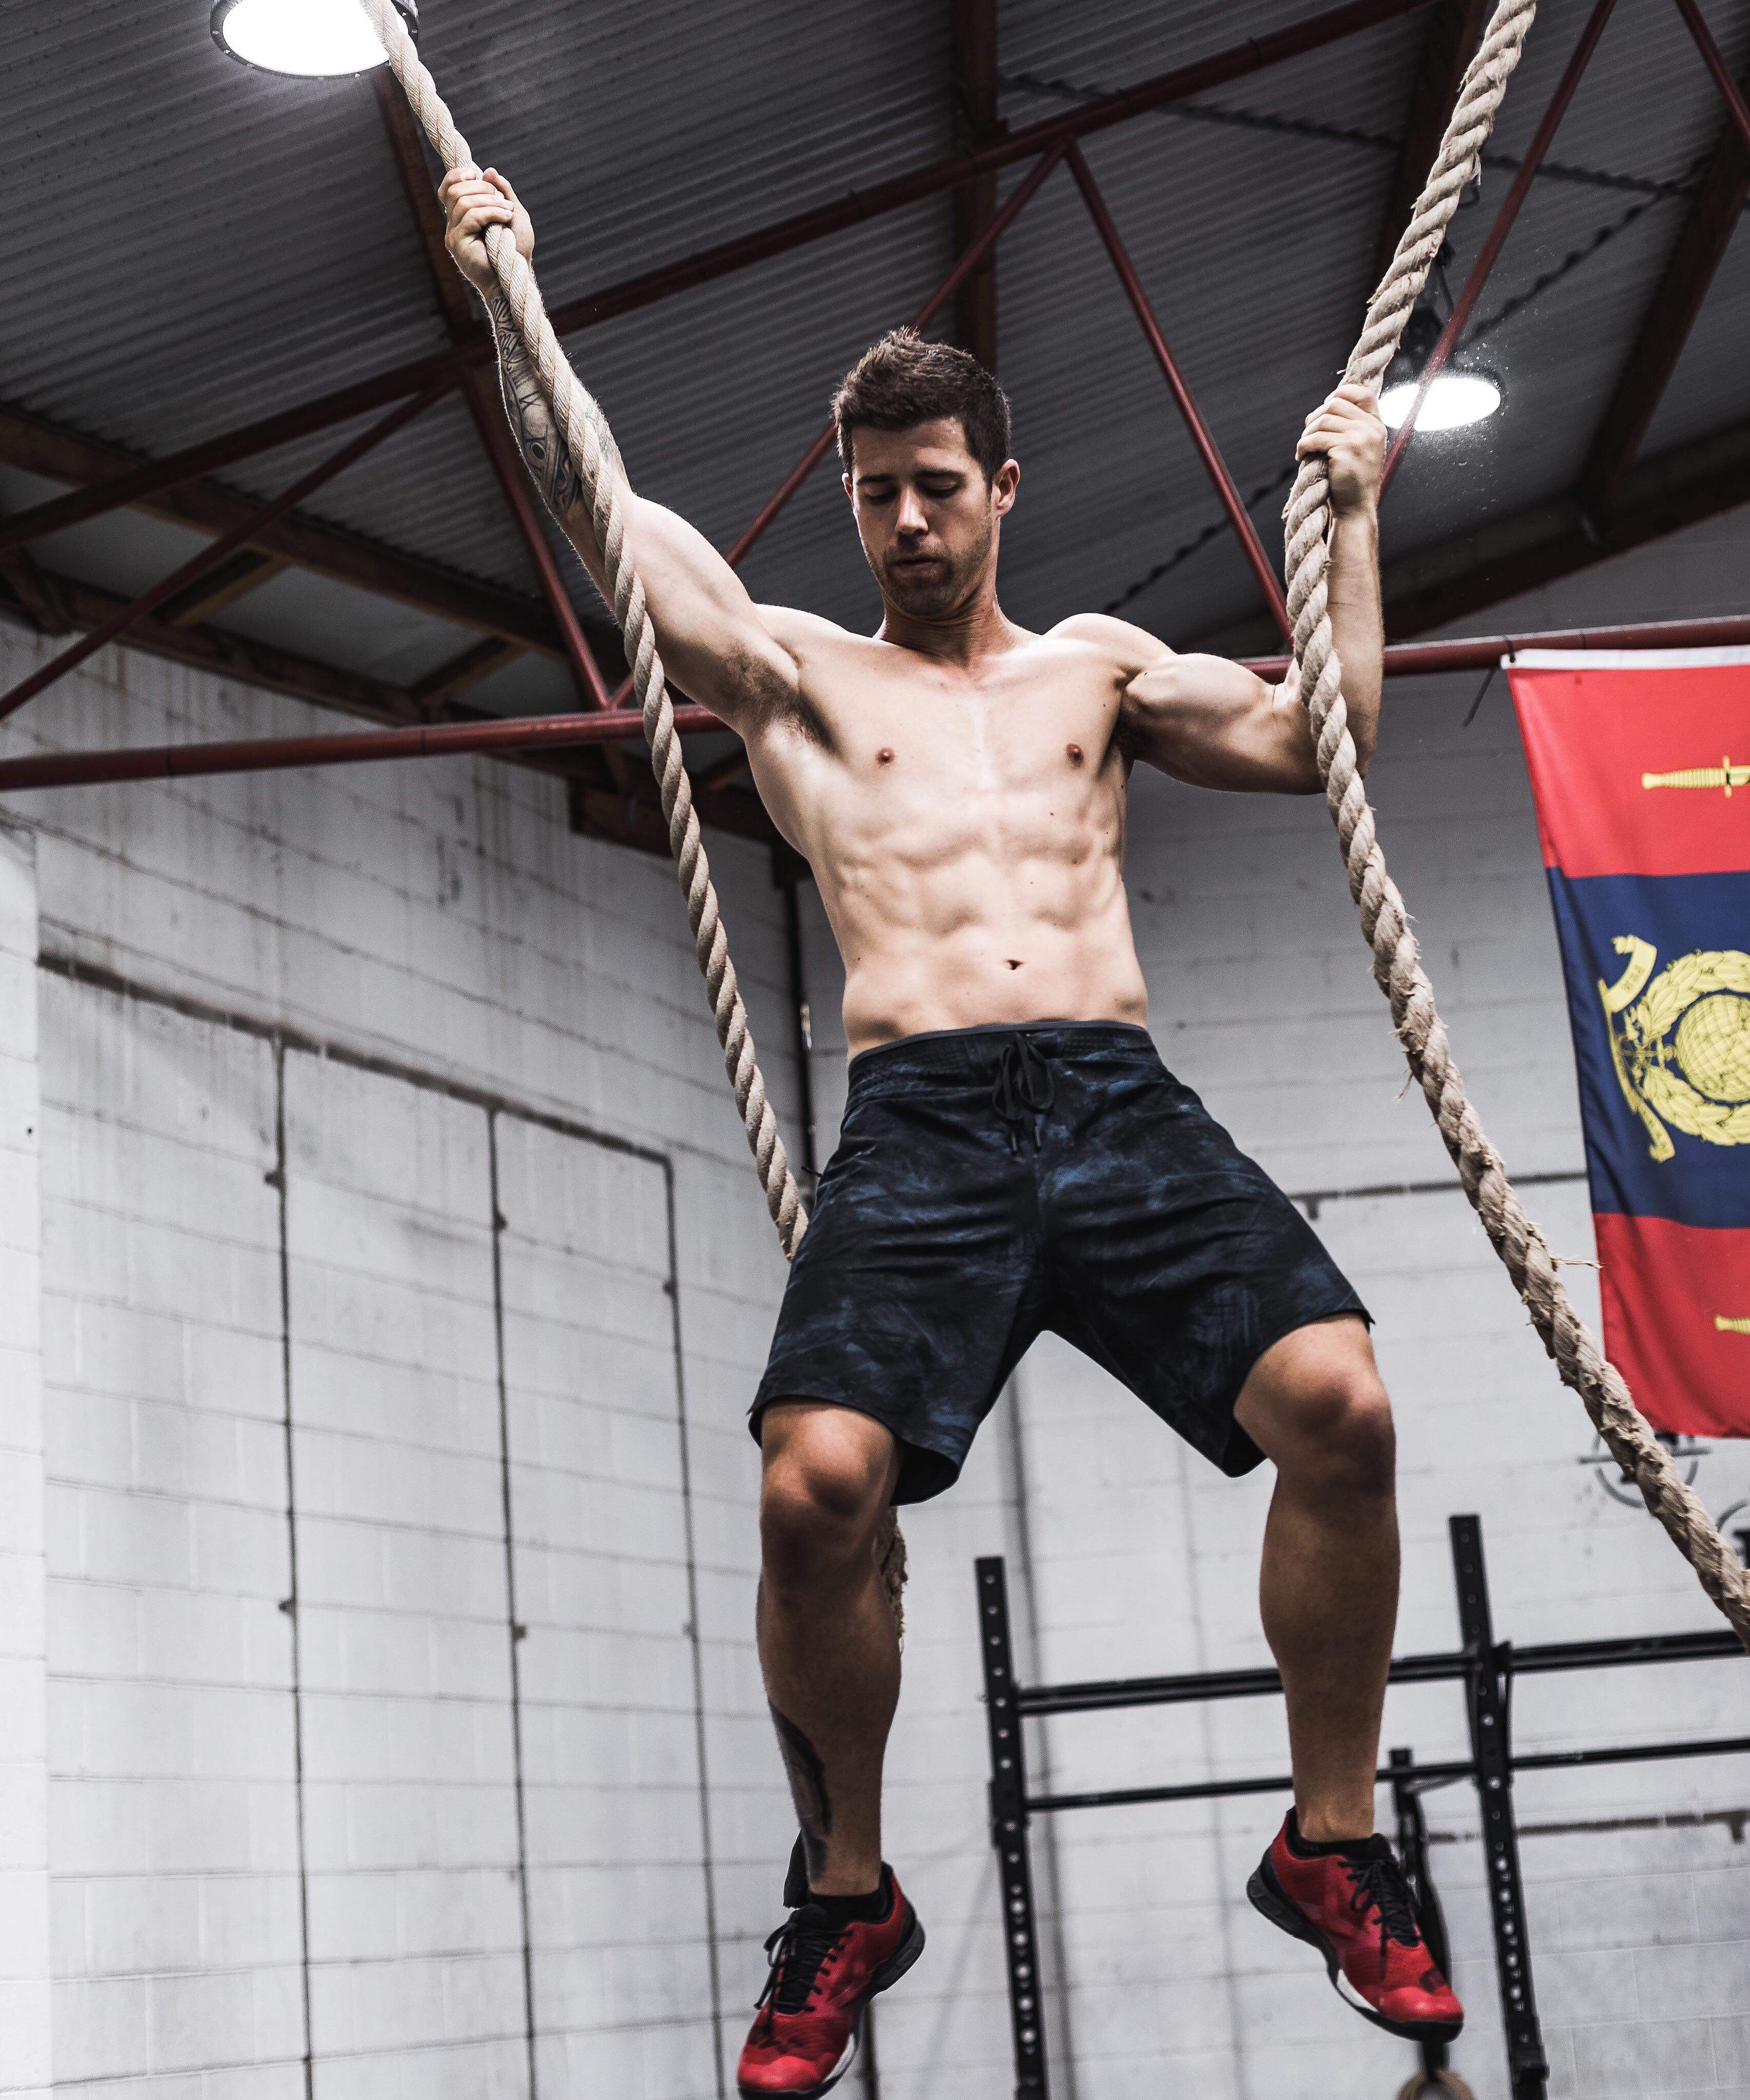 Dennis hanging from ropes